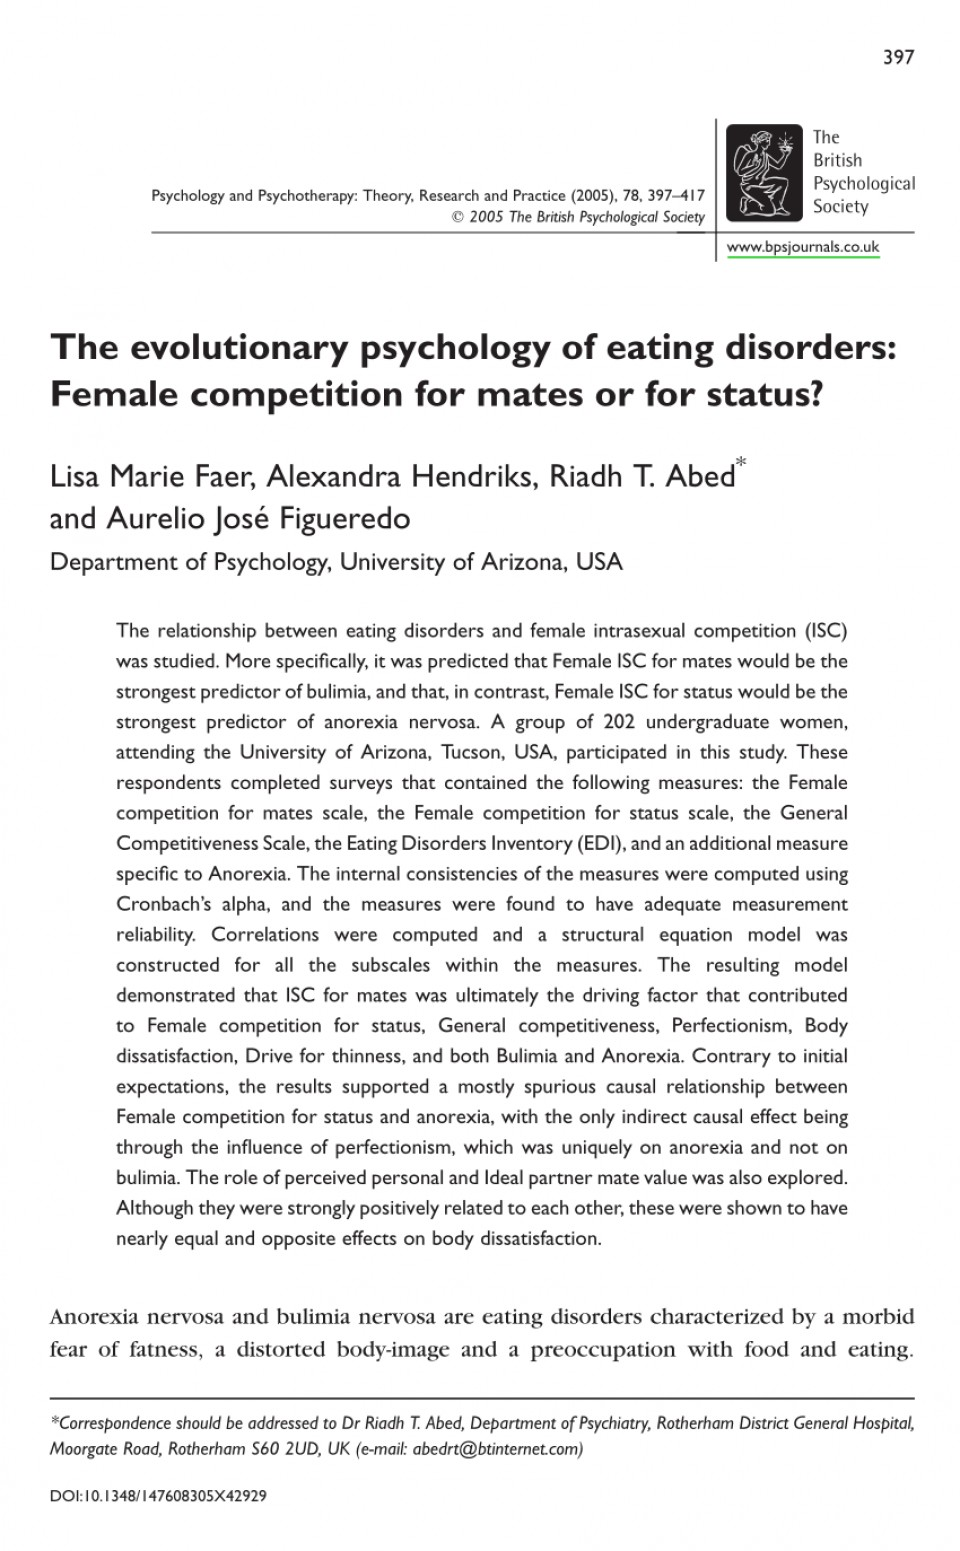 006 Psychology Research Paper On Eating Disorders Top Study Topics Essay 960